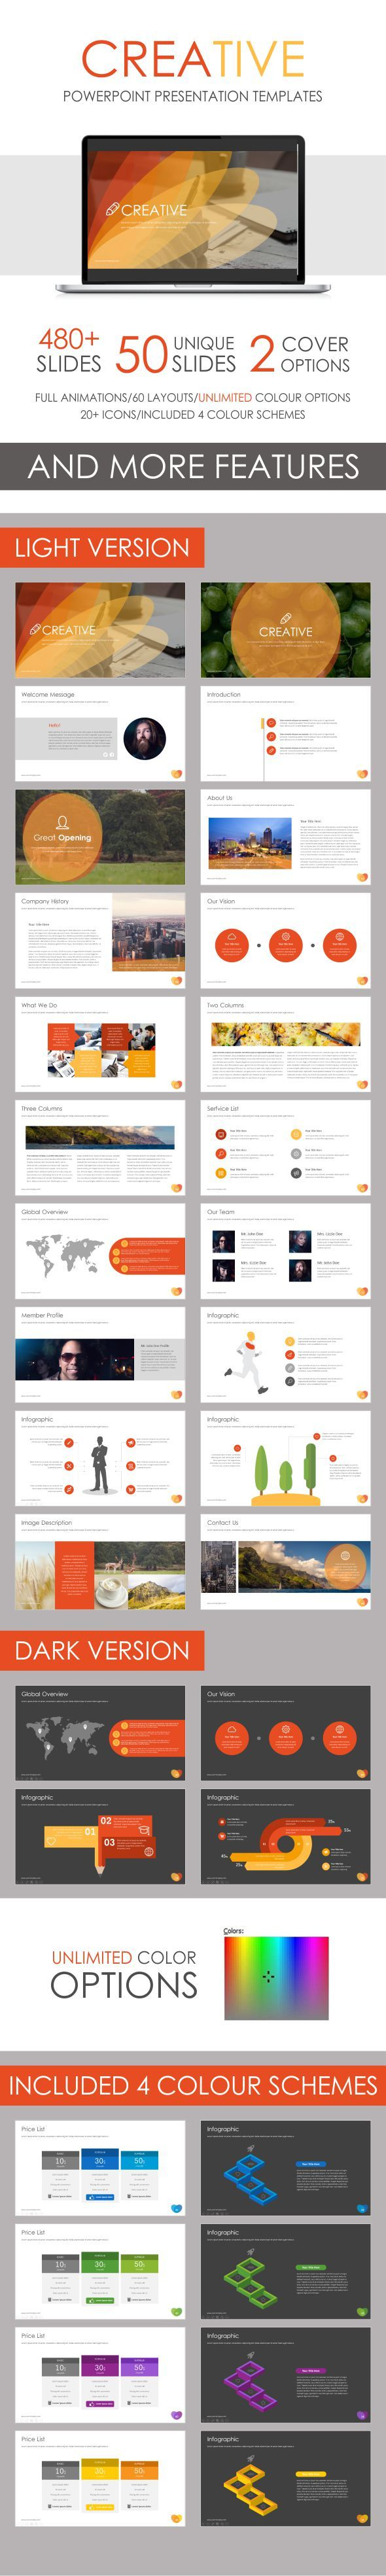 Creative PowerPoint Template. Download here: http://graphicriver.net/item/creative-powerpoint-template/15679412?ref=ksioks